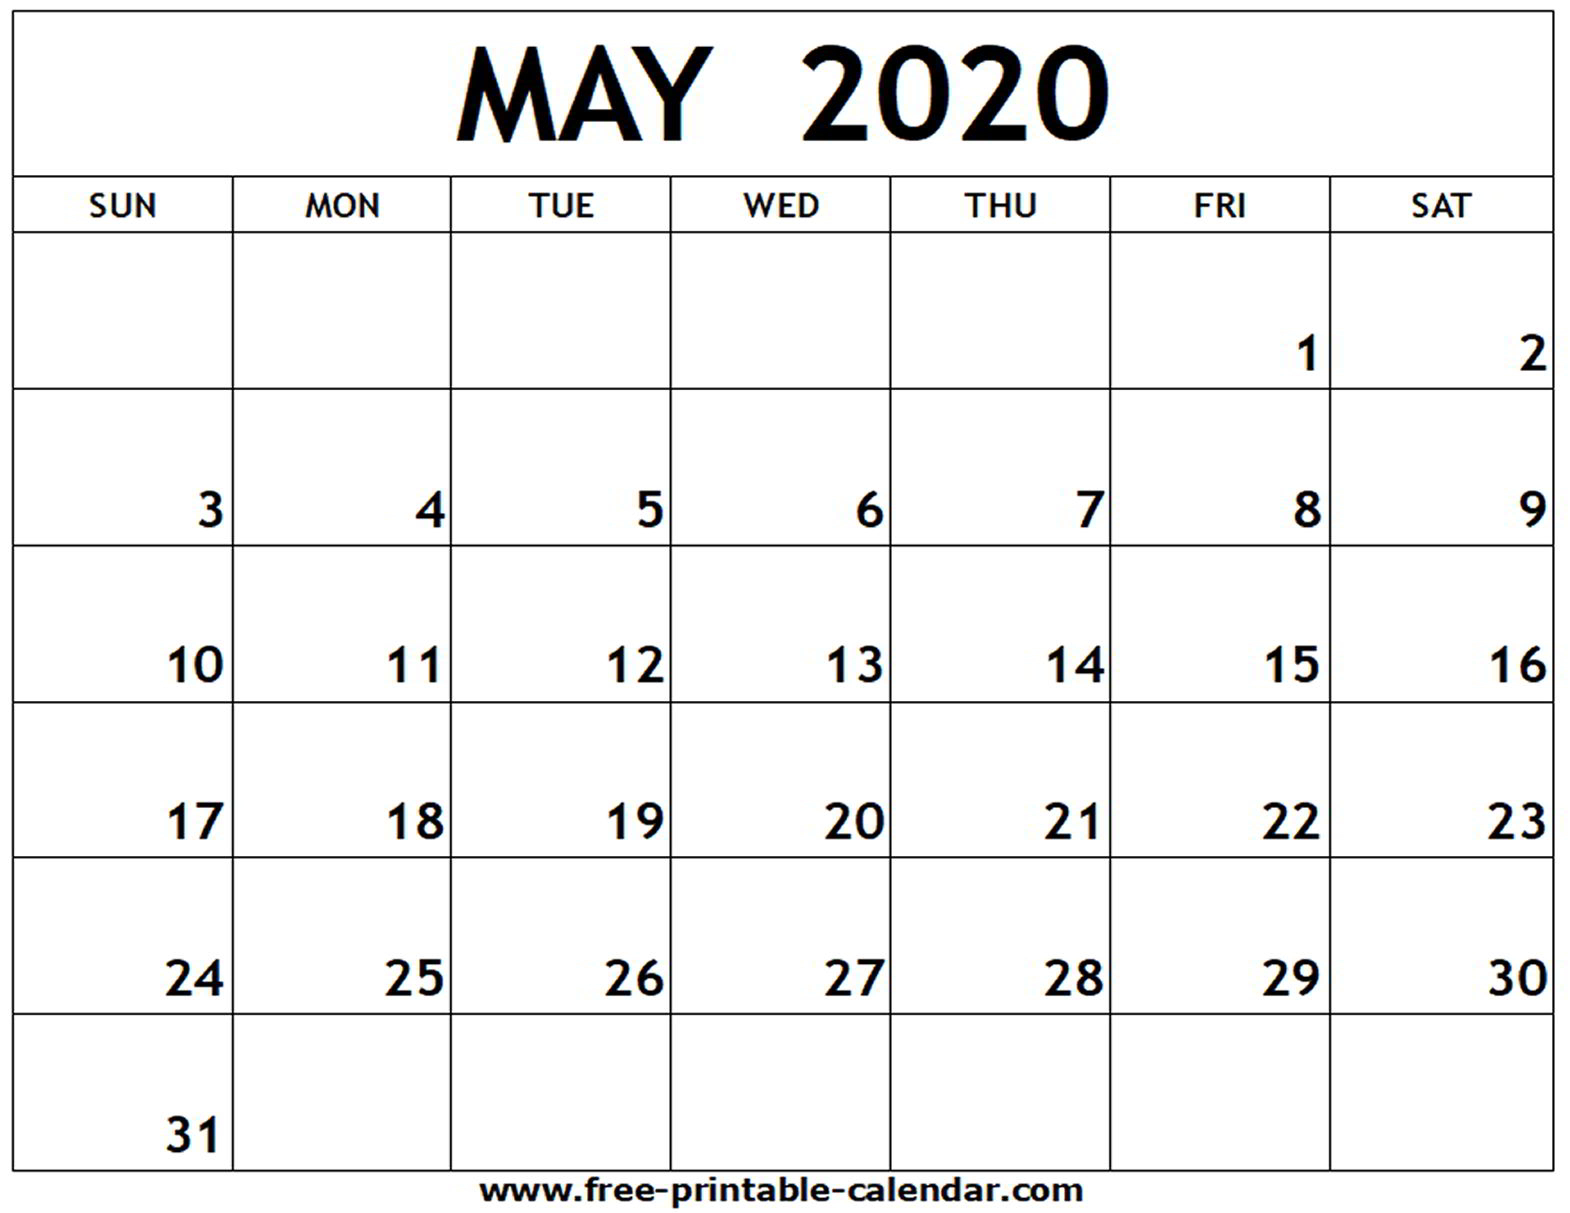 May Calendar Template 2020 - Saves.wpart.co